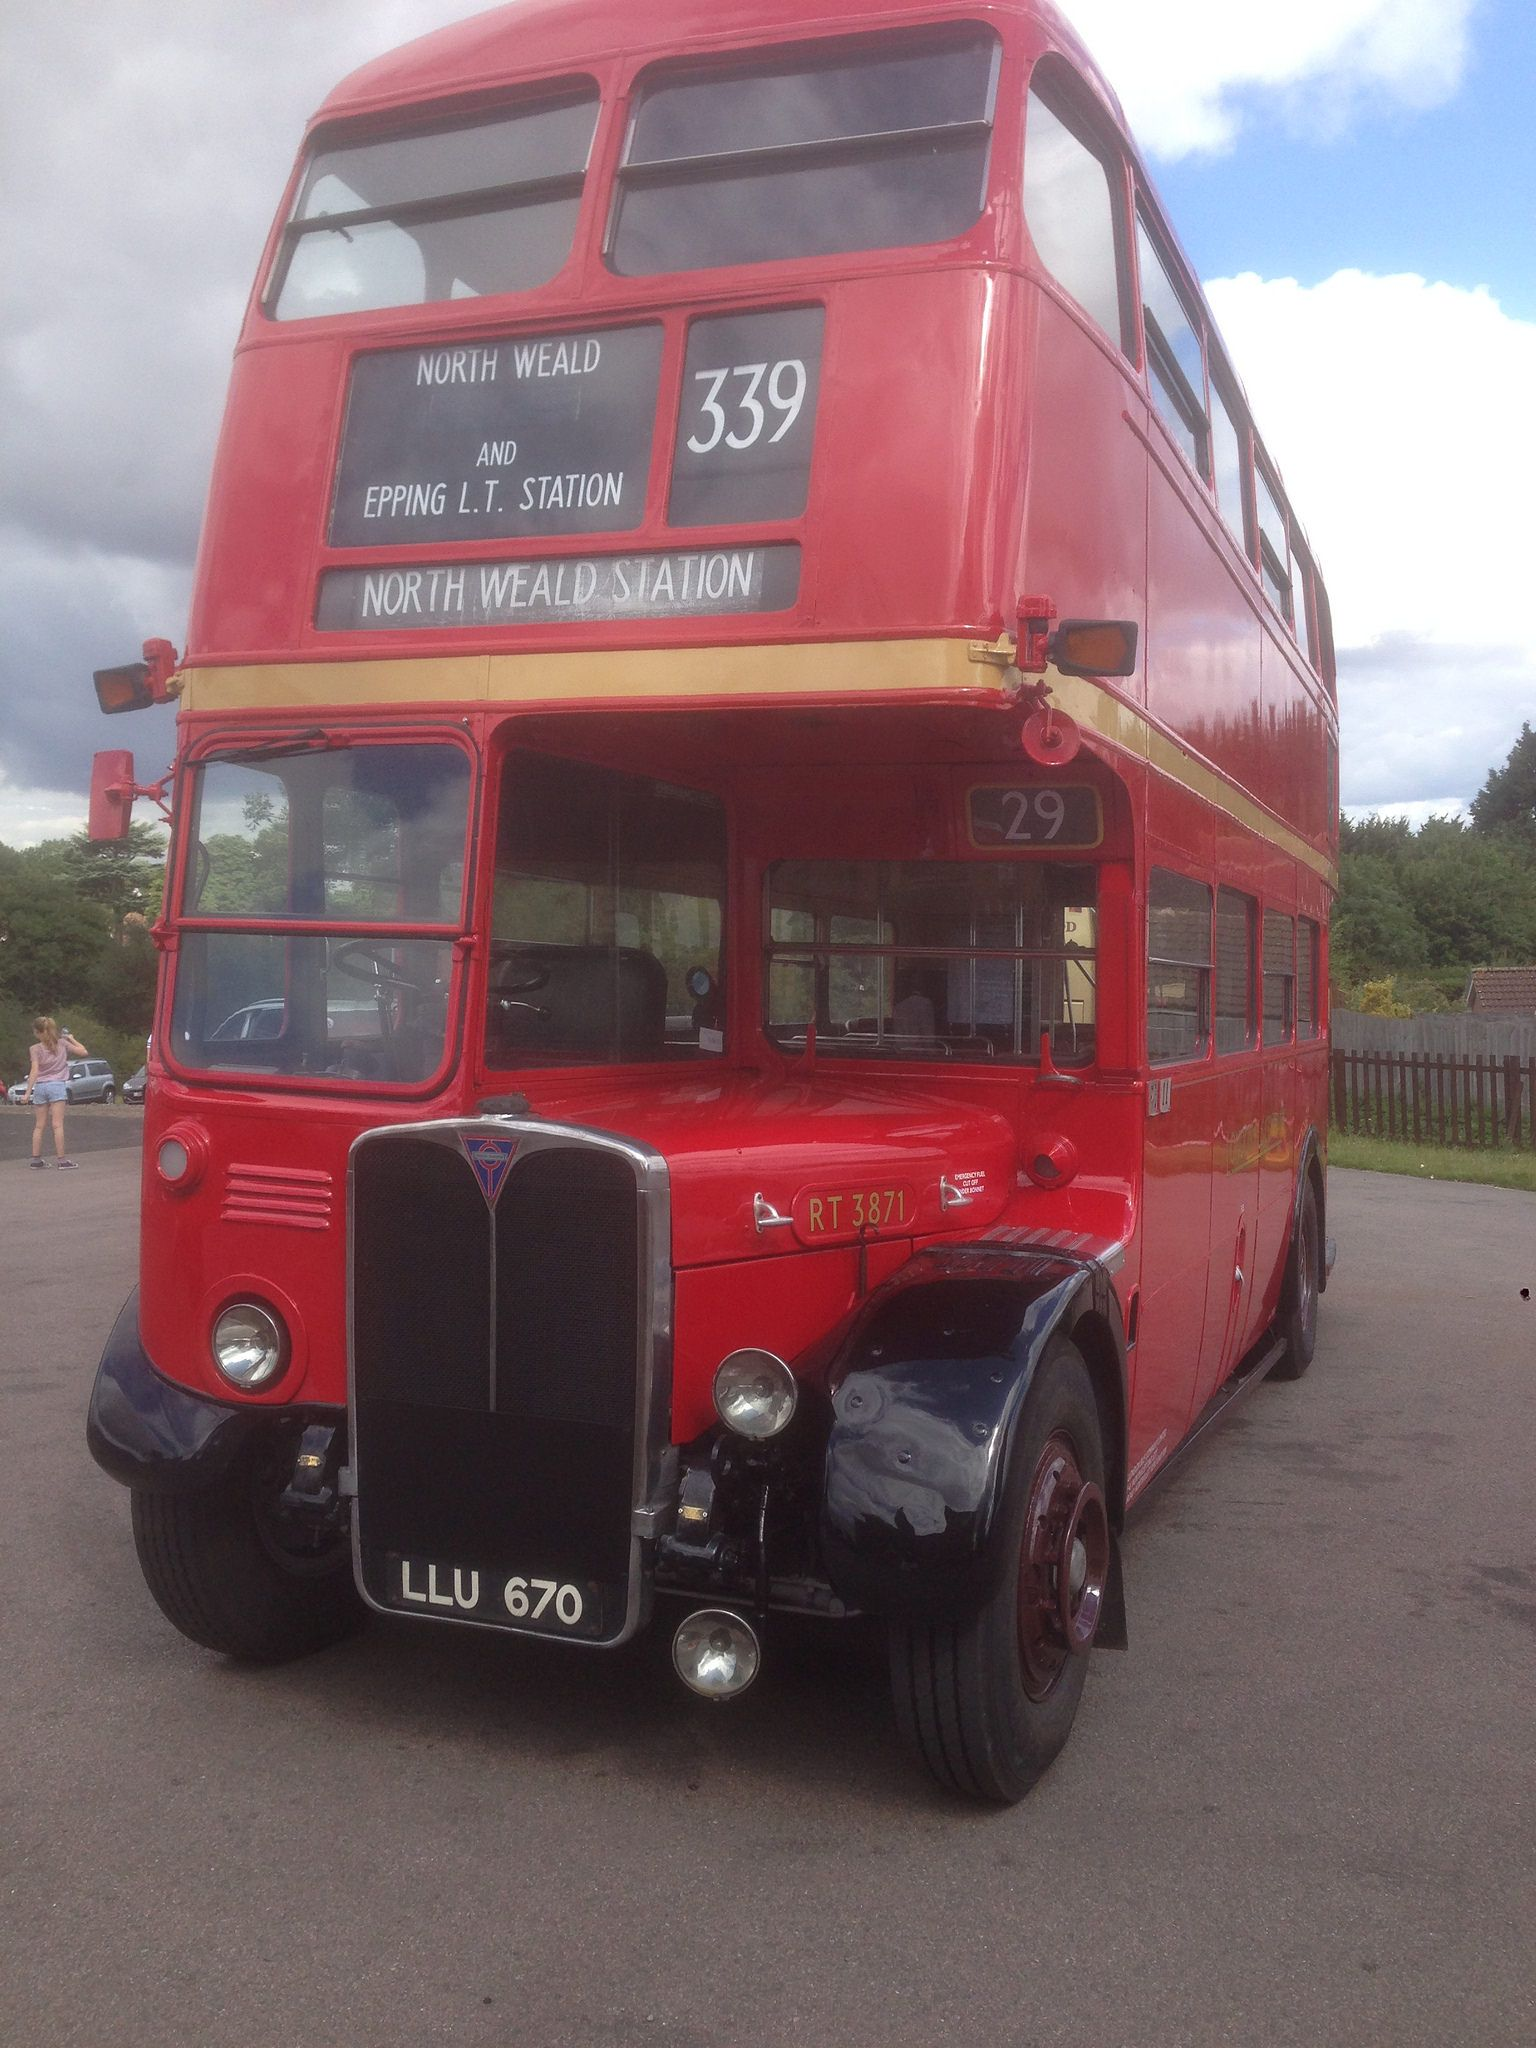 https://flic.kr/p/wBVknh | RT3871 on the 339 | A RT3871 (LLU670) on the 339 running between Epping and North Weald stations.